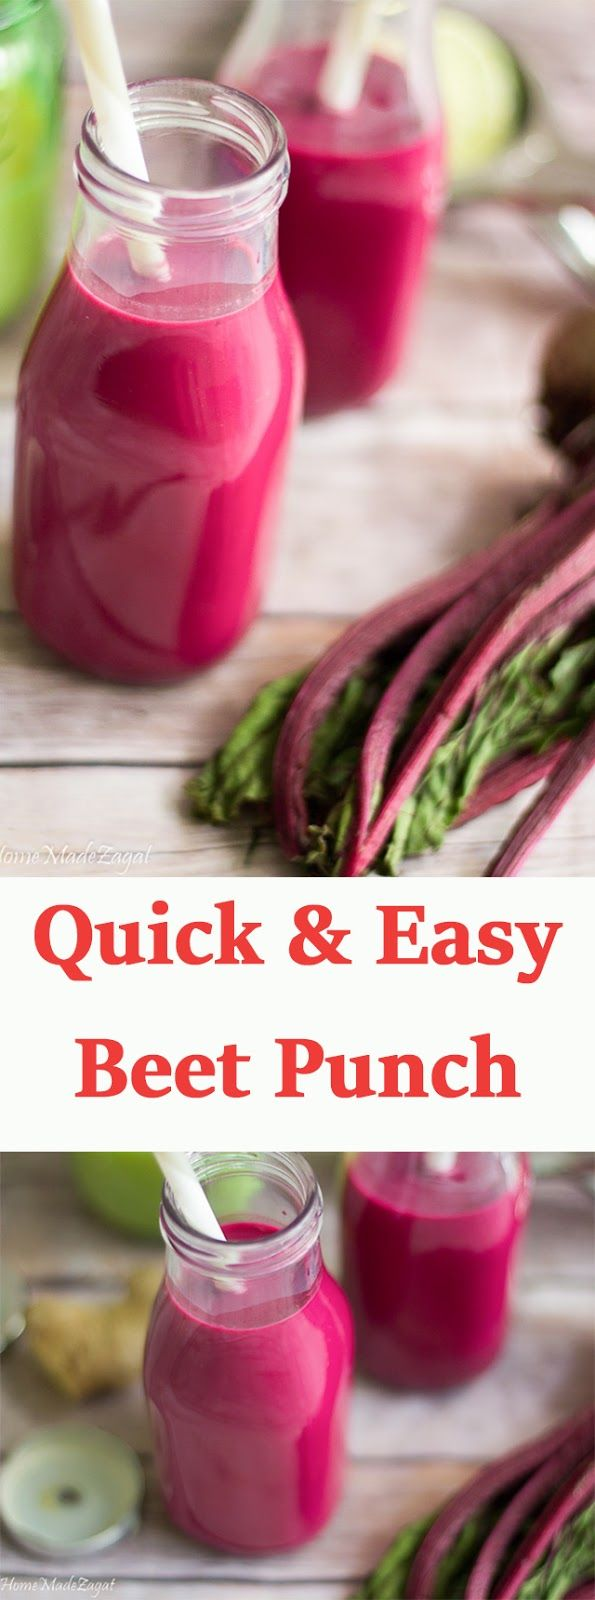 An easy recipe for making the Caribbean favorite of Beet root punch made with milk and a hint of ginger and lime juice.